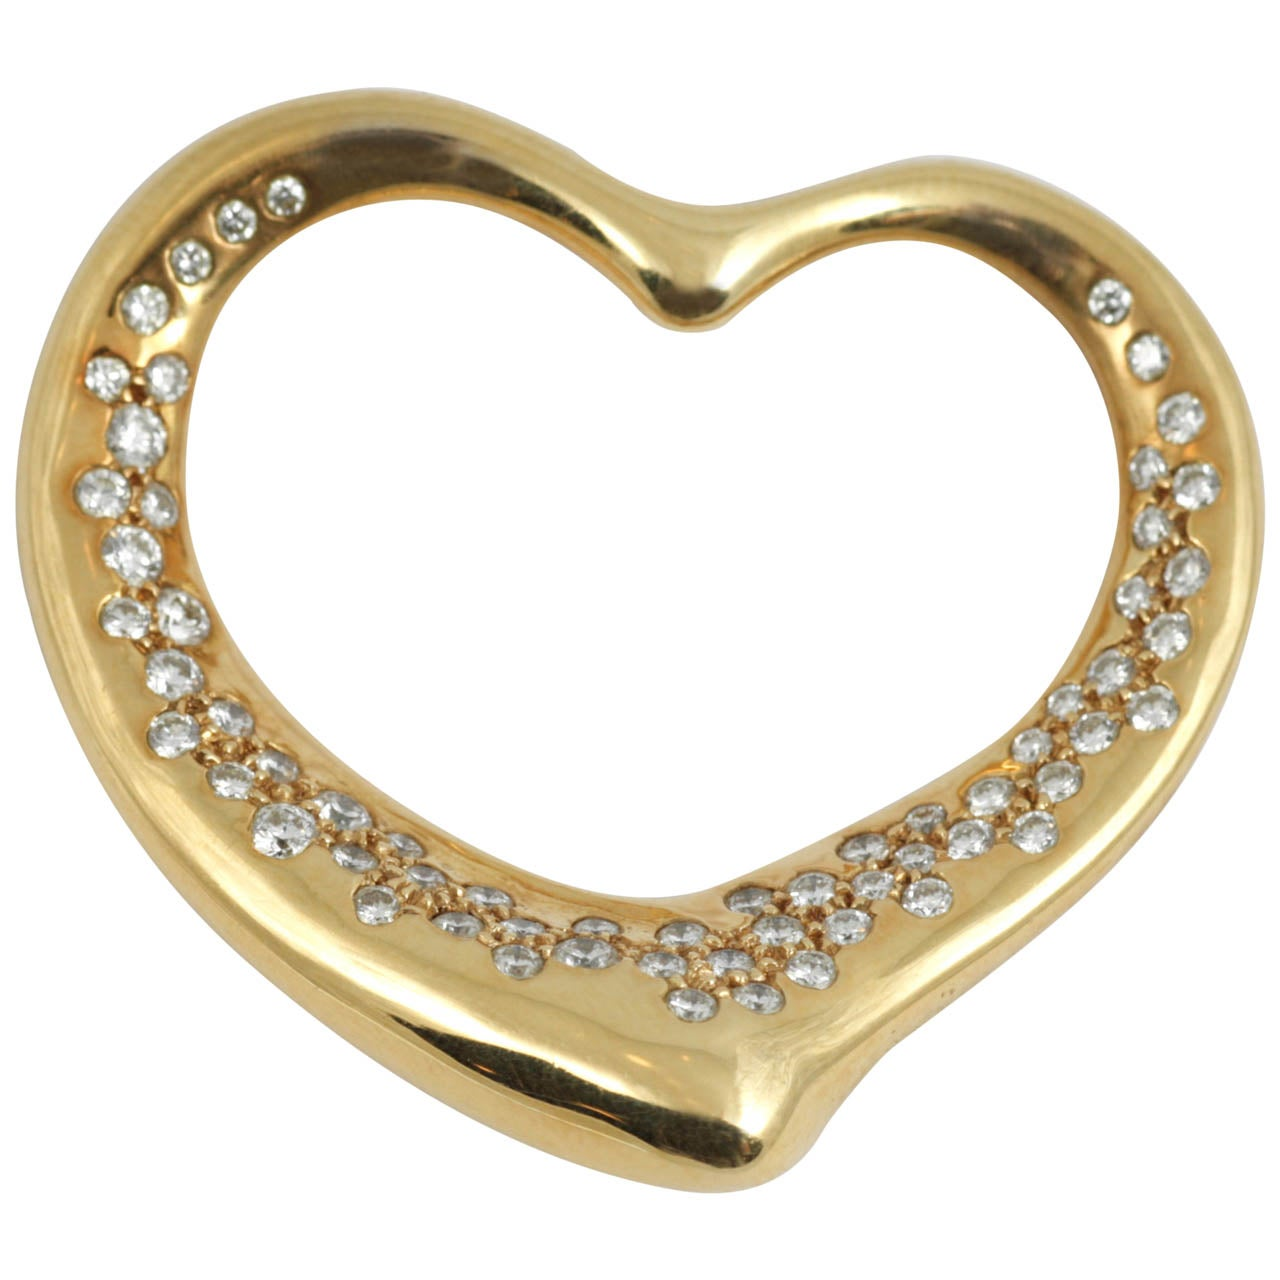 Tiffany and co diamond gold heart pendant at 1stdibs tiffany co diamond gold heart pendant 1 aloadofball Image collections